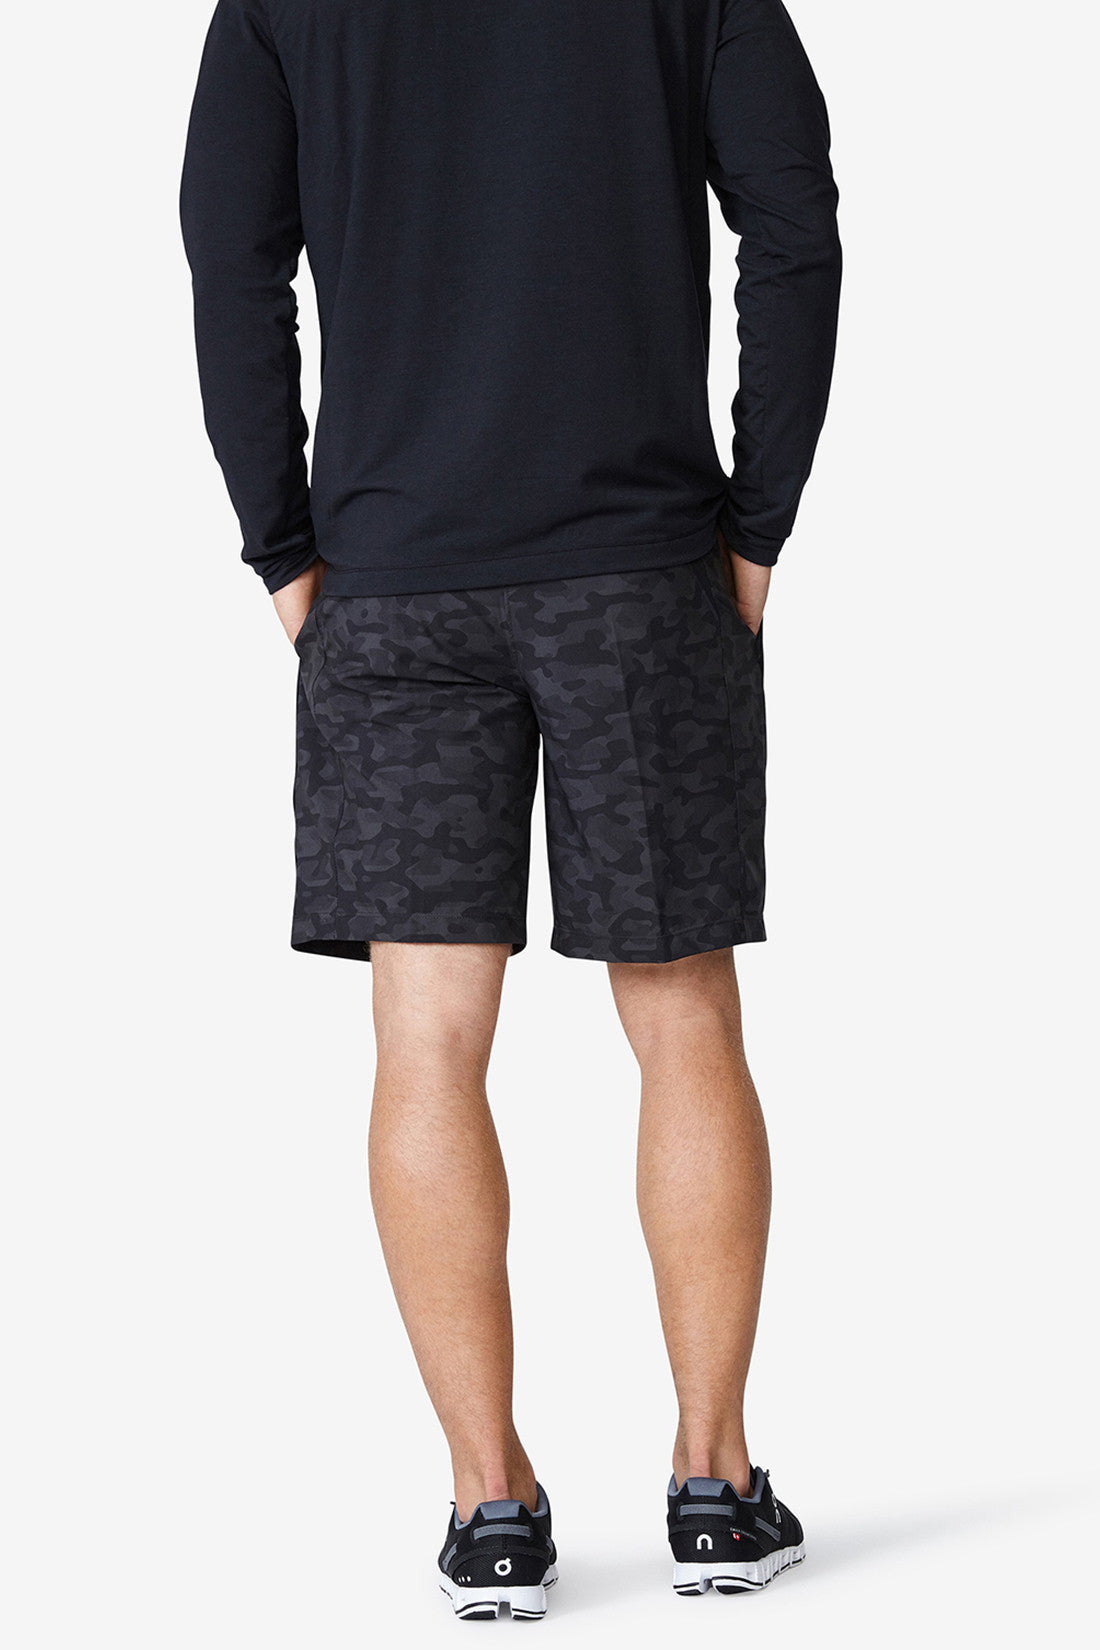 "Accelerate 9"" Short1 - Charcoal Camo"